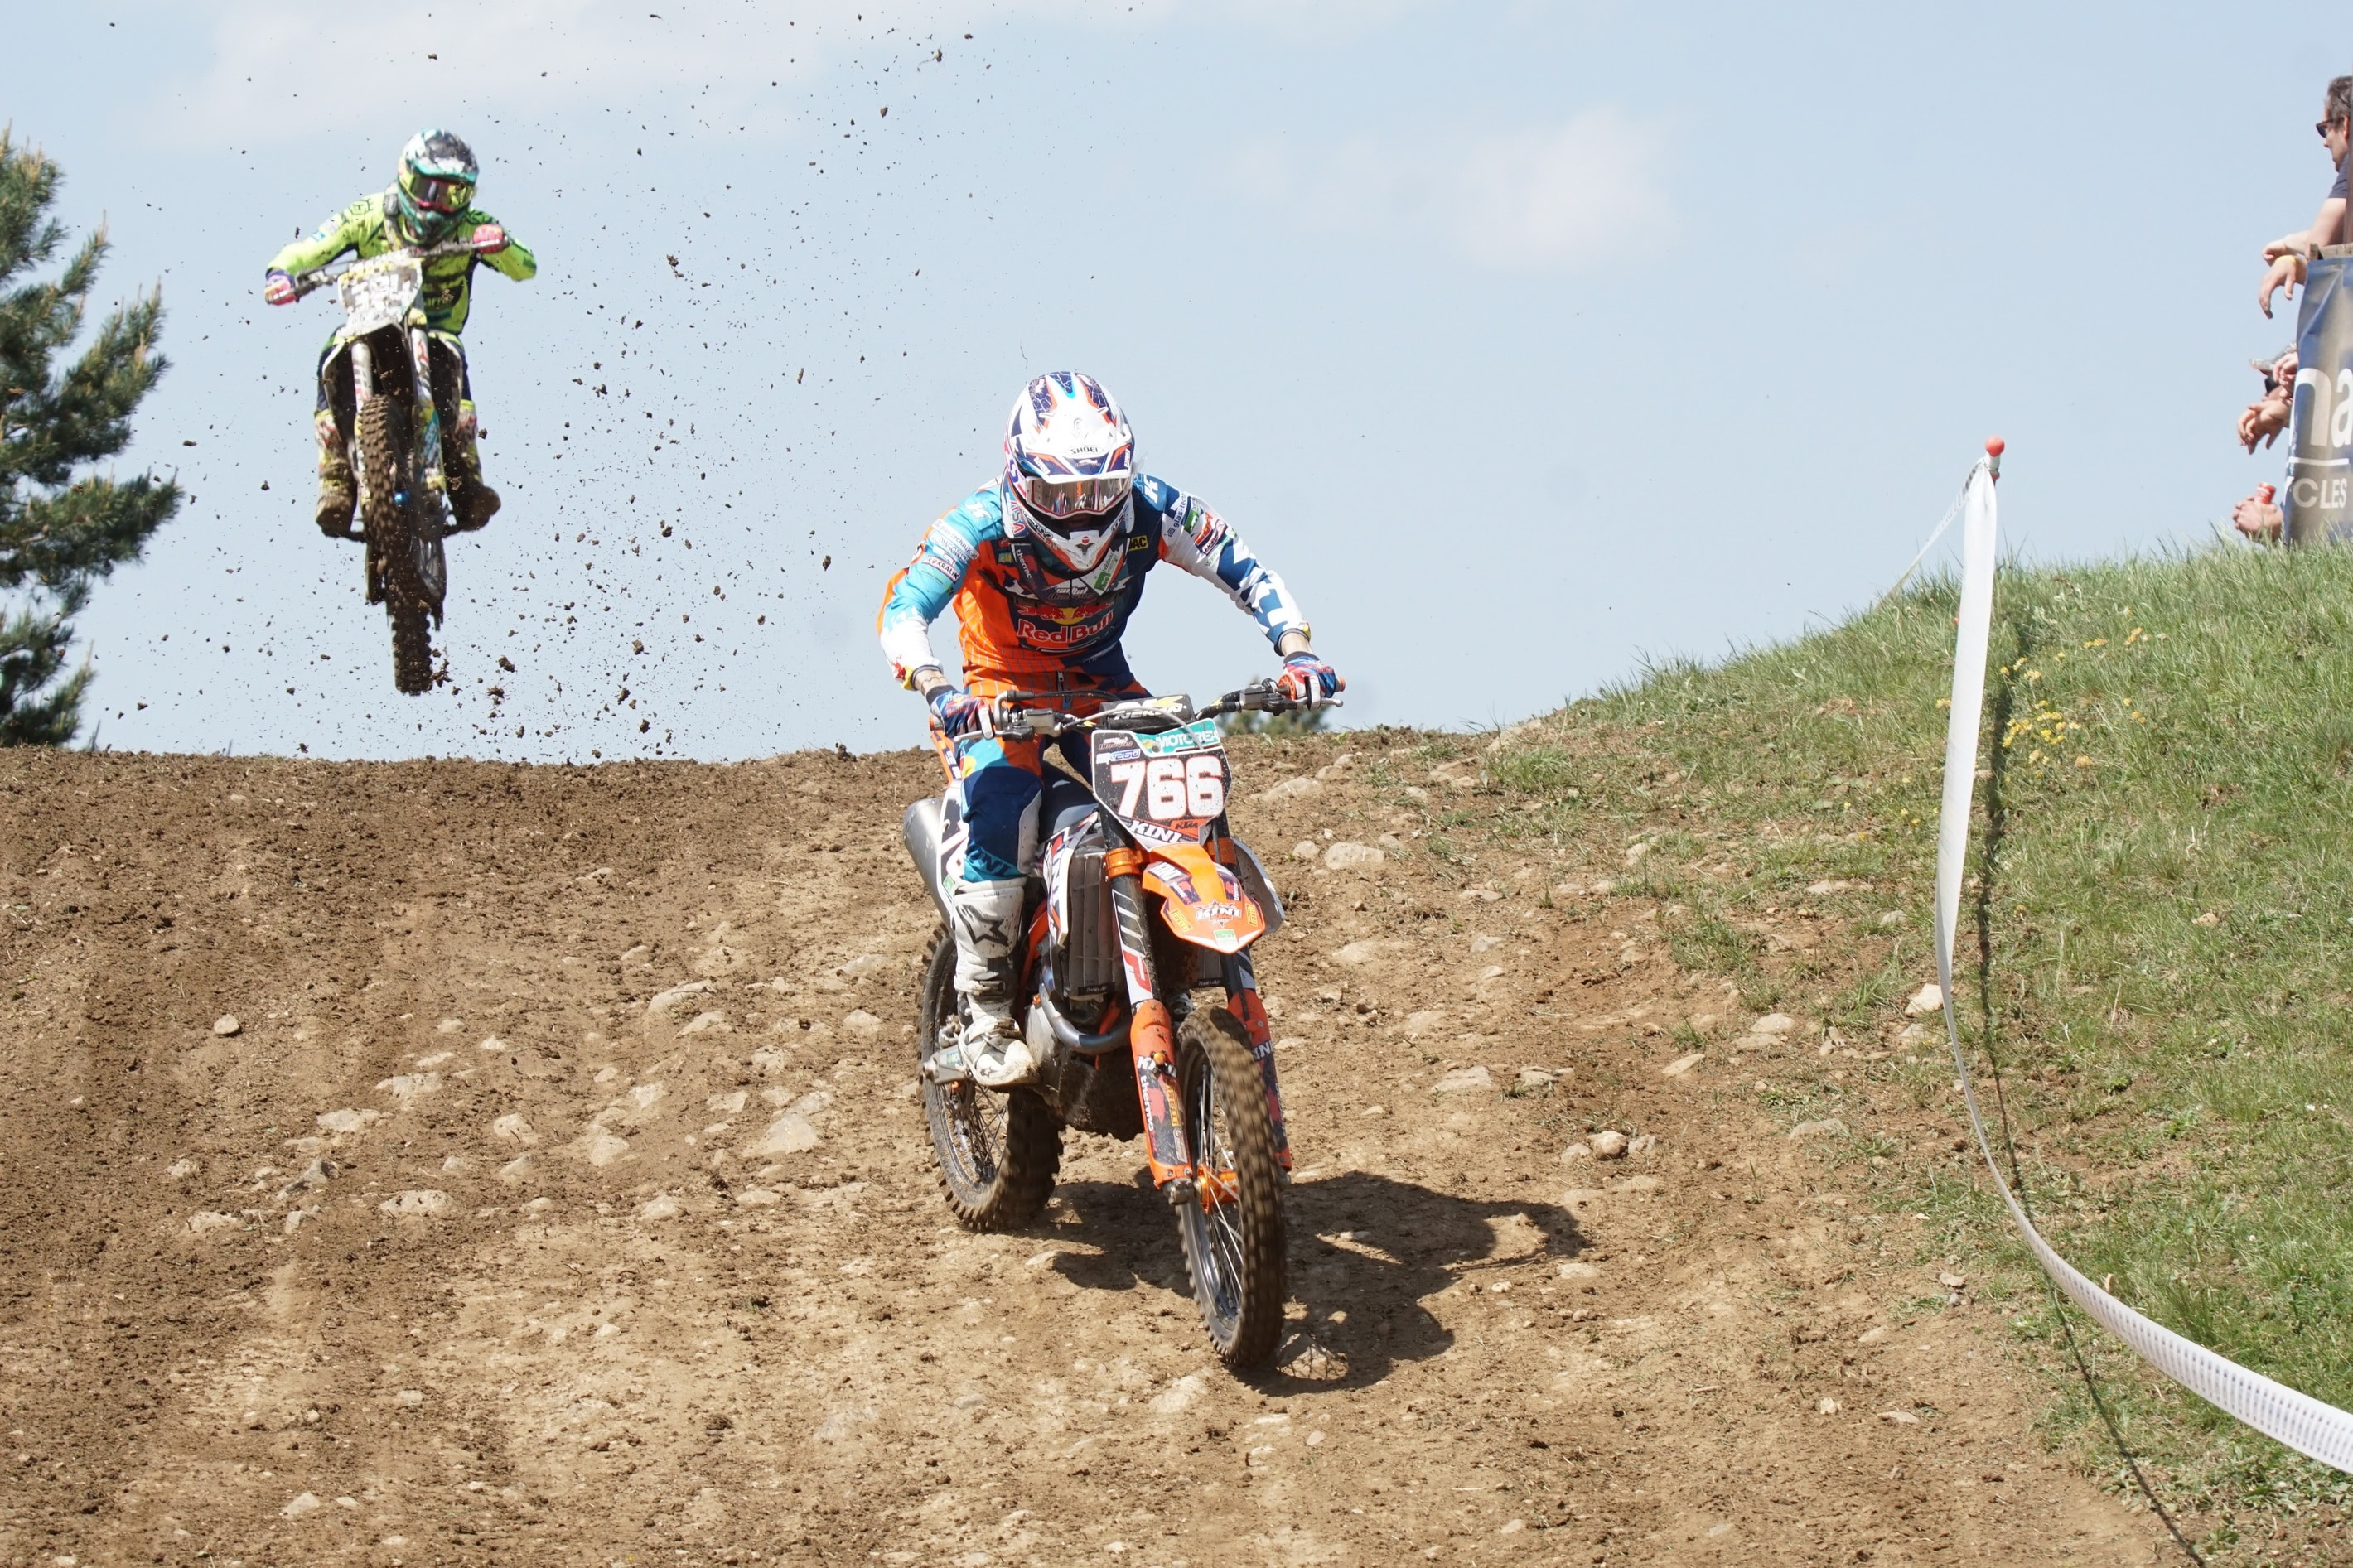 DSC 235_Moto Cross Sittendorf Teil1 am 29.04.2018